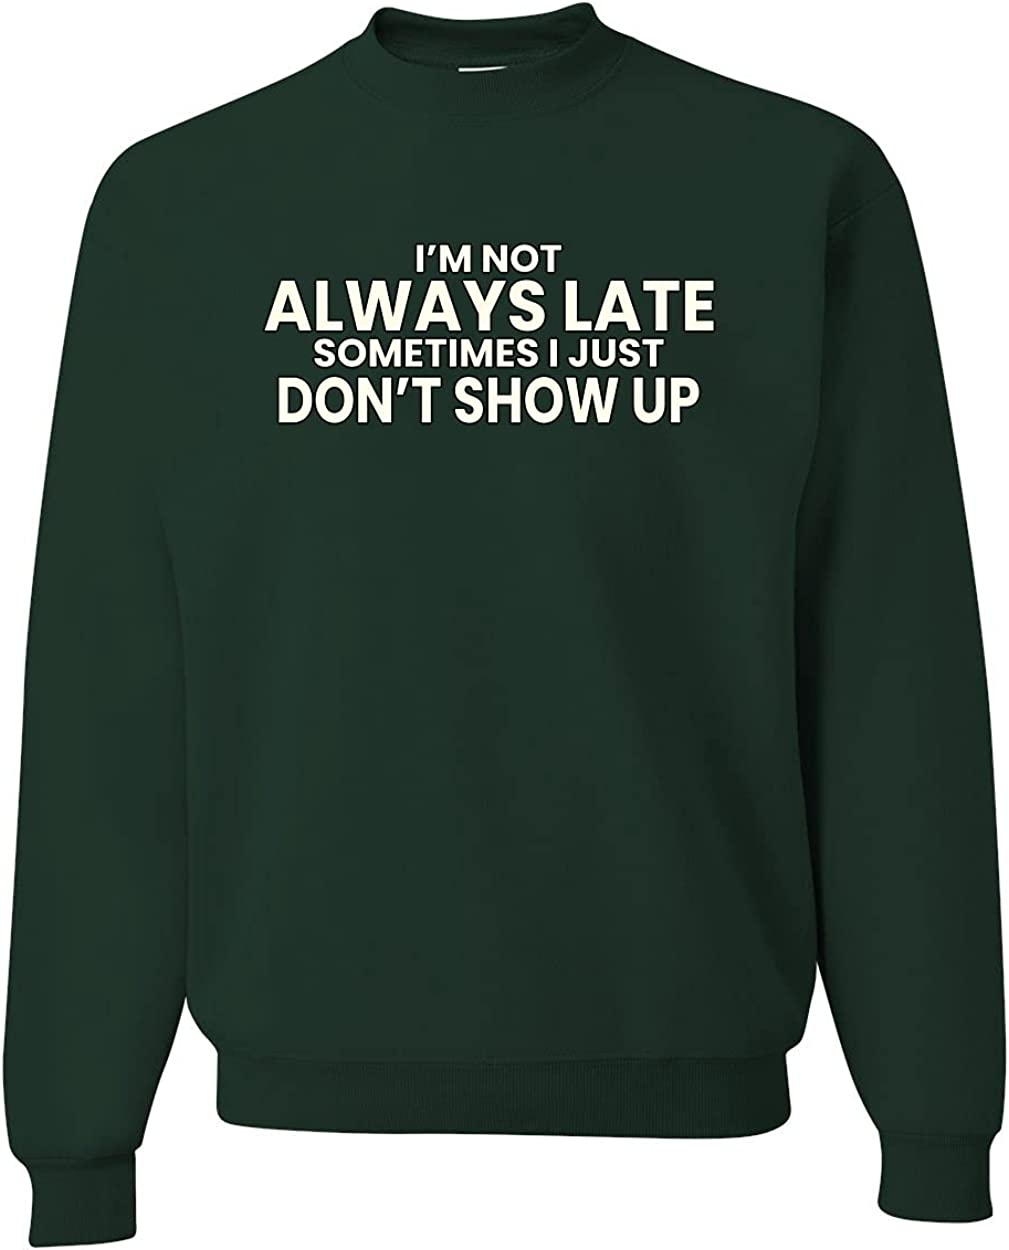 I'm Not Always Late Sometimes I Don't Up Show A Sale SALE% OFF surprise price is realized Just Humor Unisex